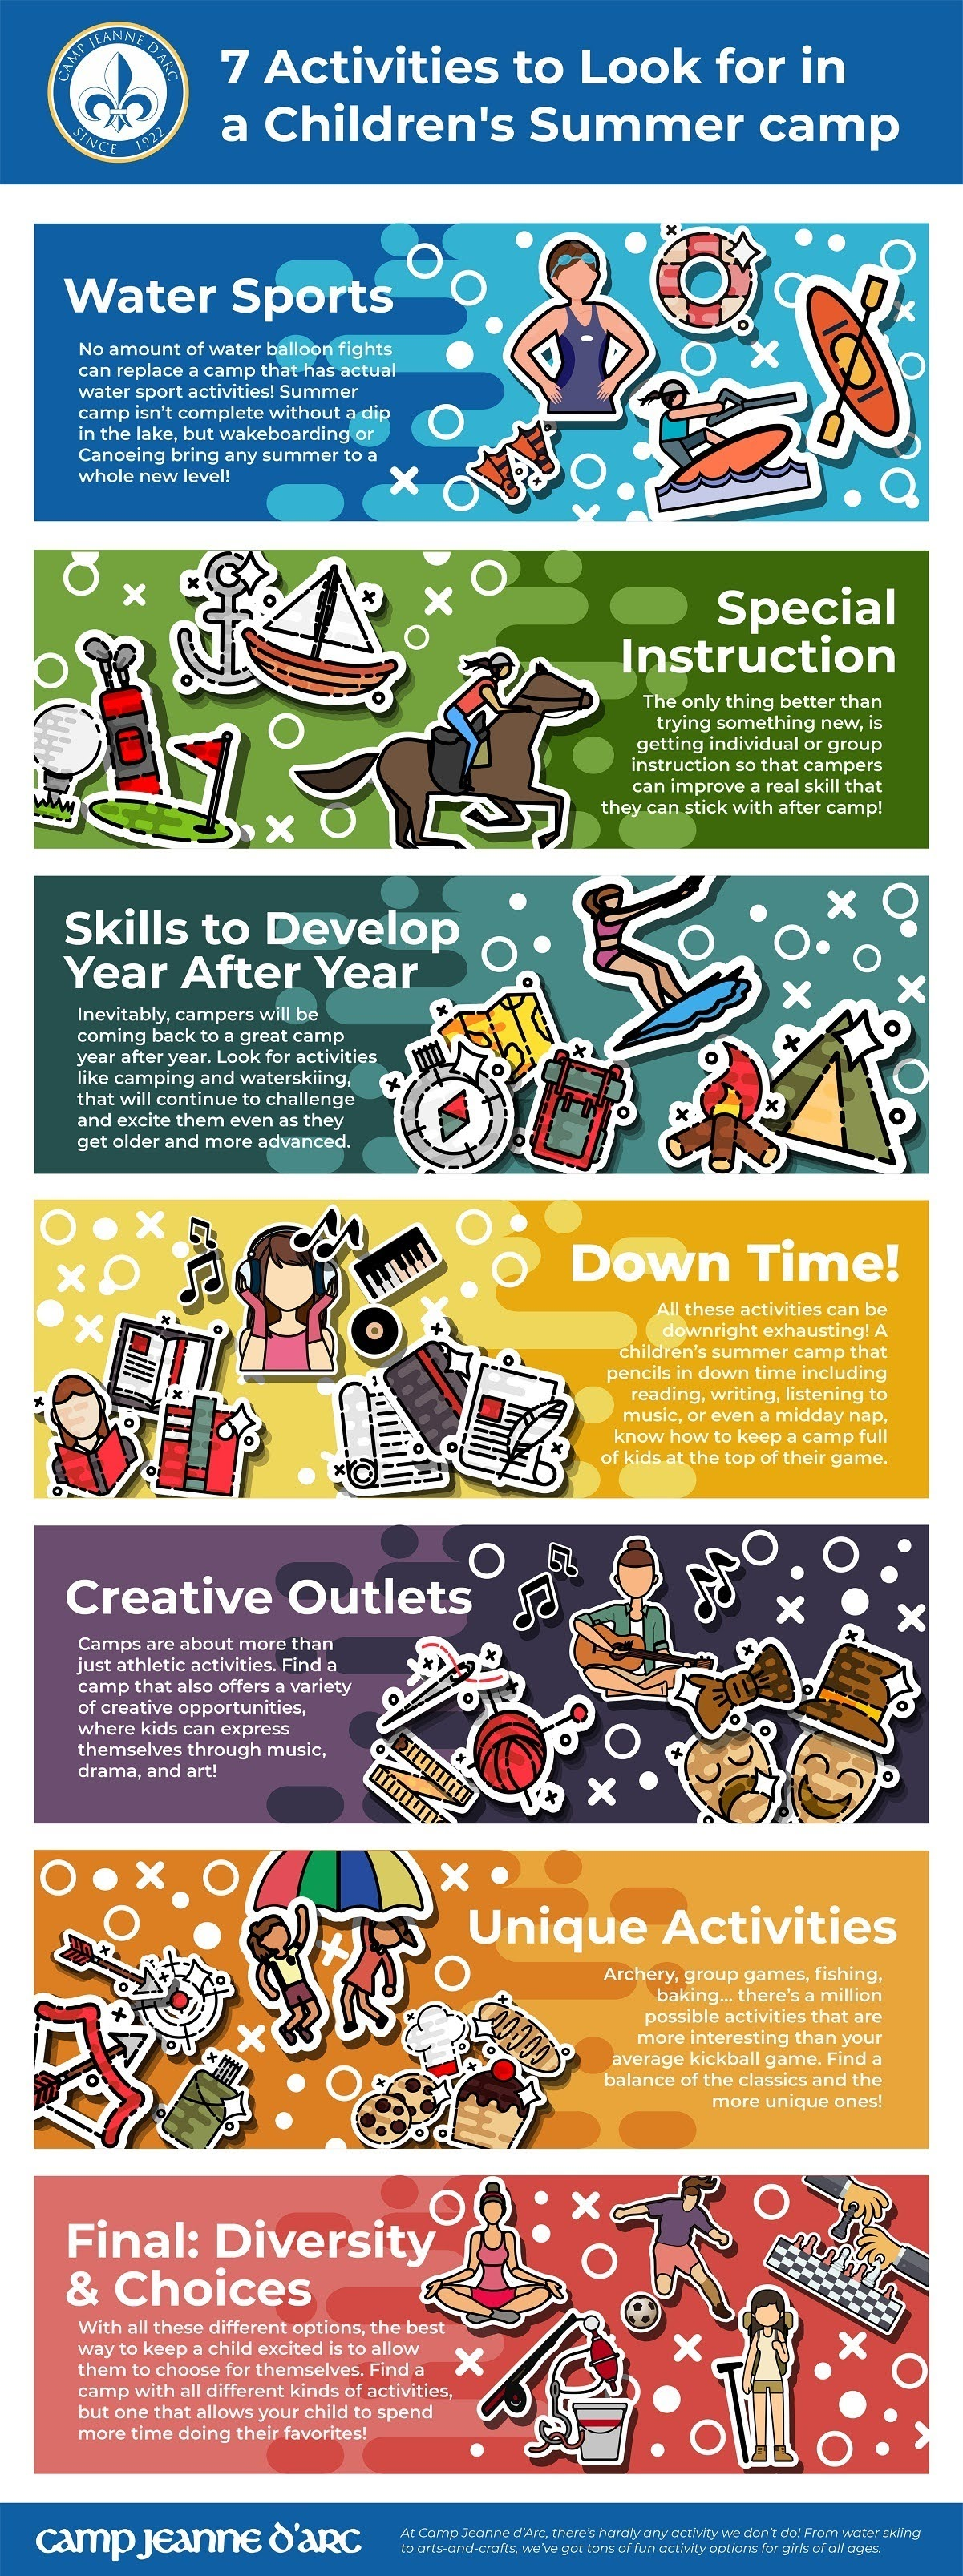 7 Activities to Look for in a Children's Summer Camp #infographic